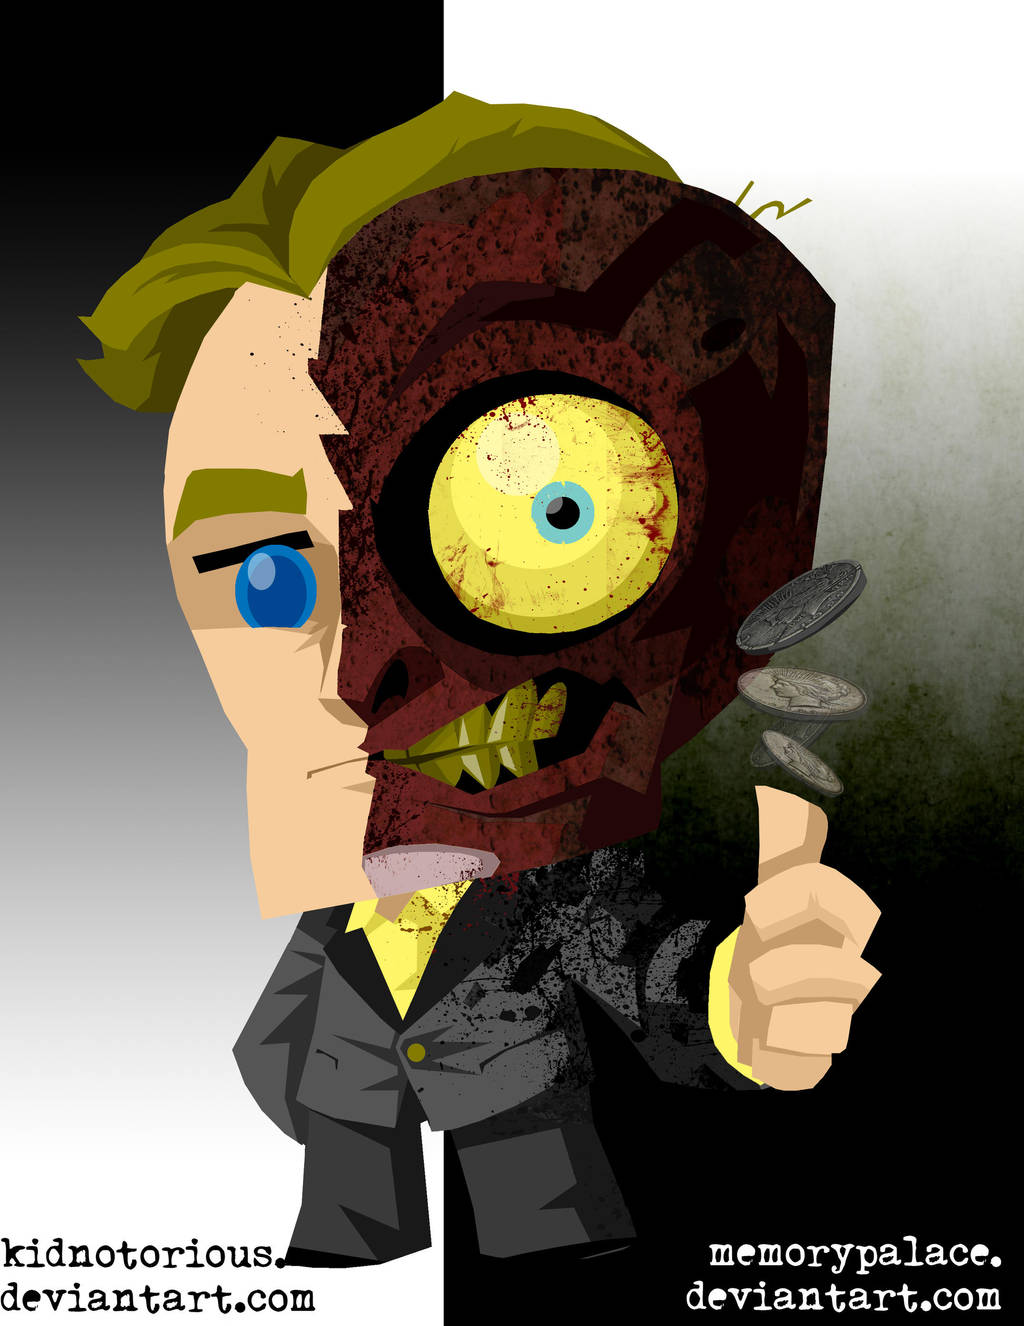 lil' Two Face by memorypalace